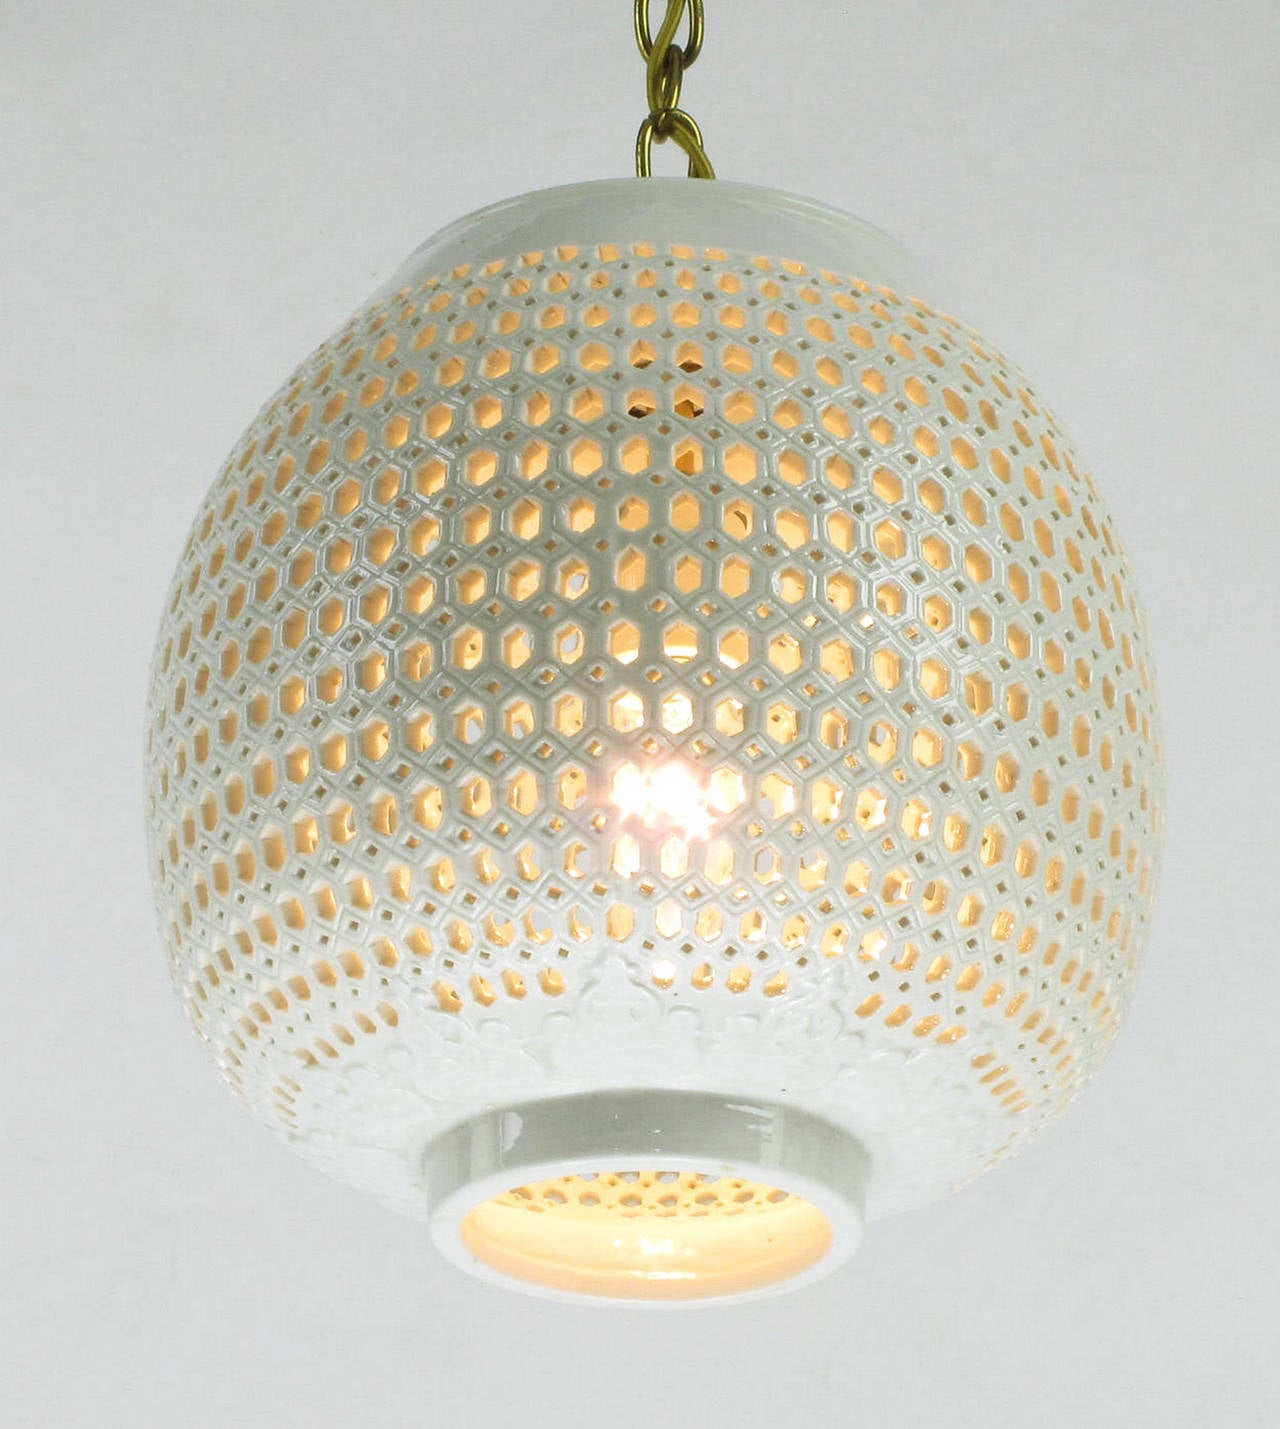 reticulated blanc de chine gourd form pendant light at 1stdibs